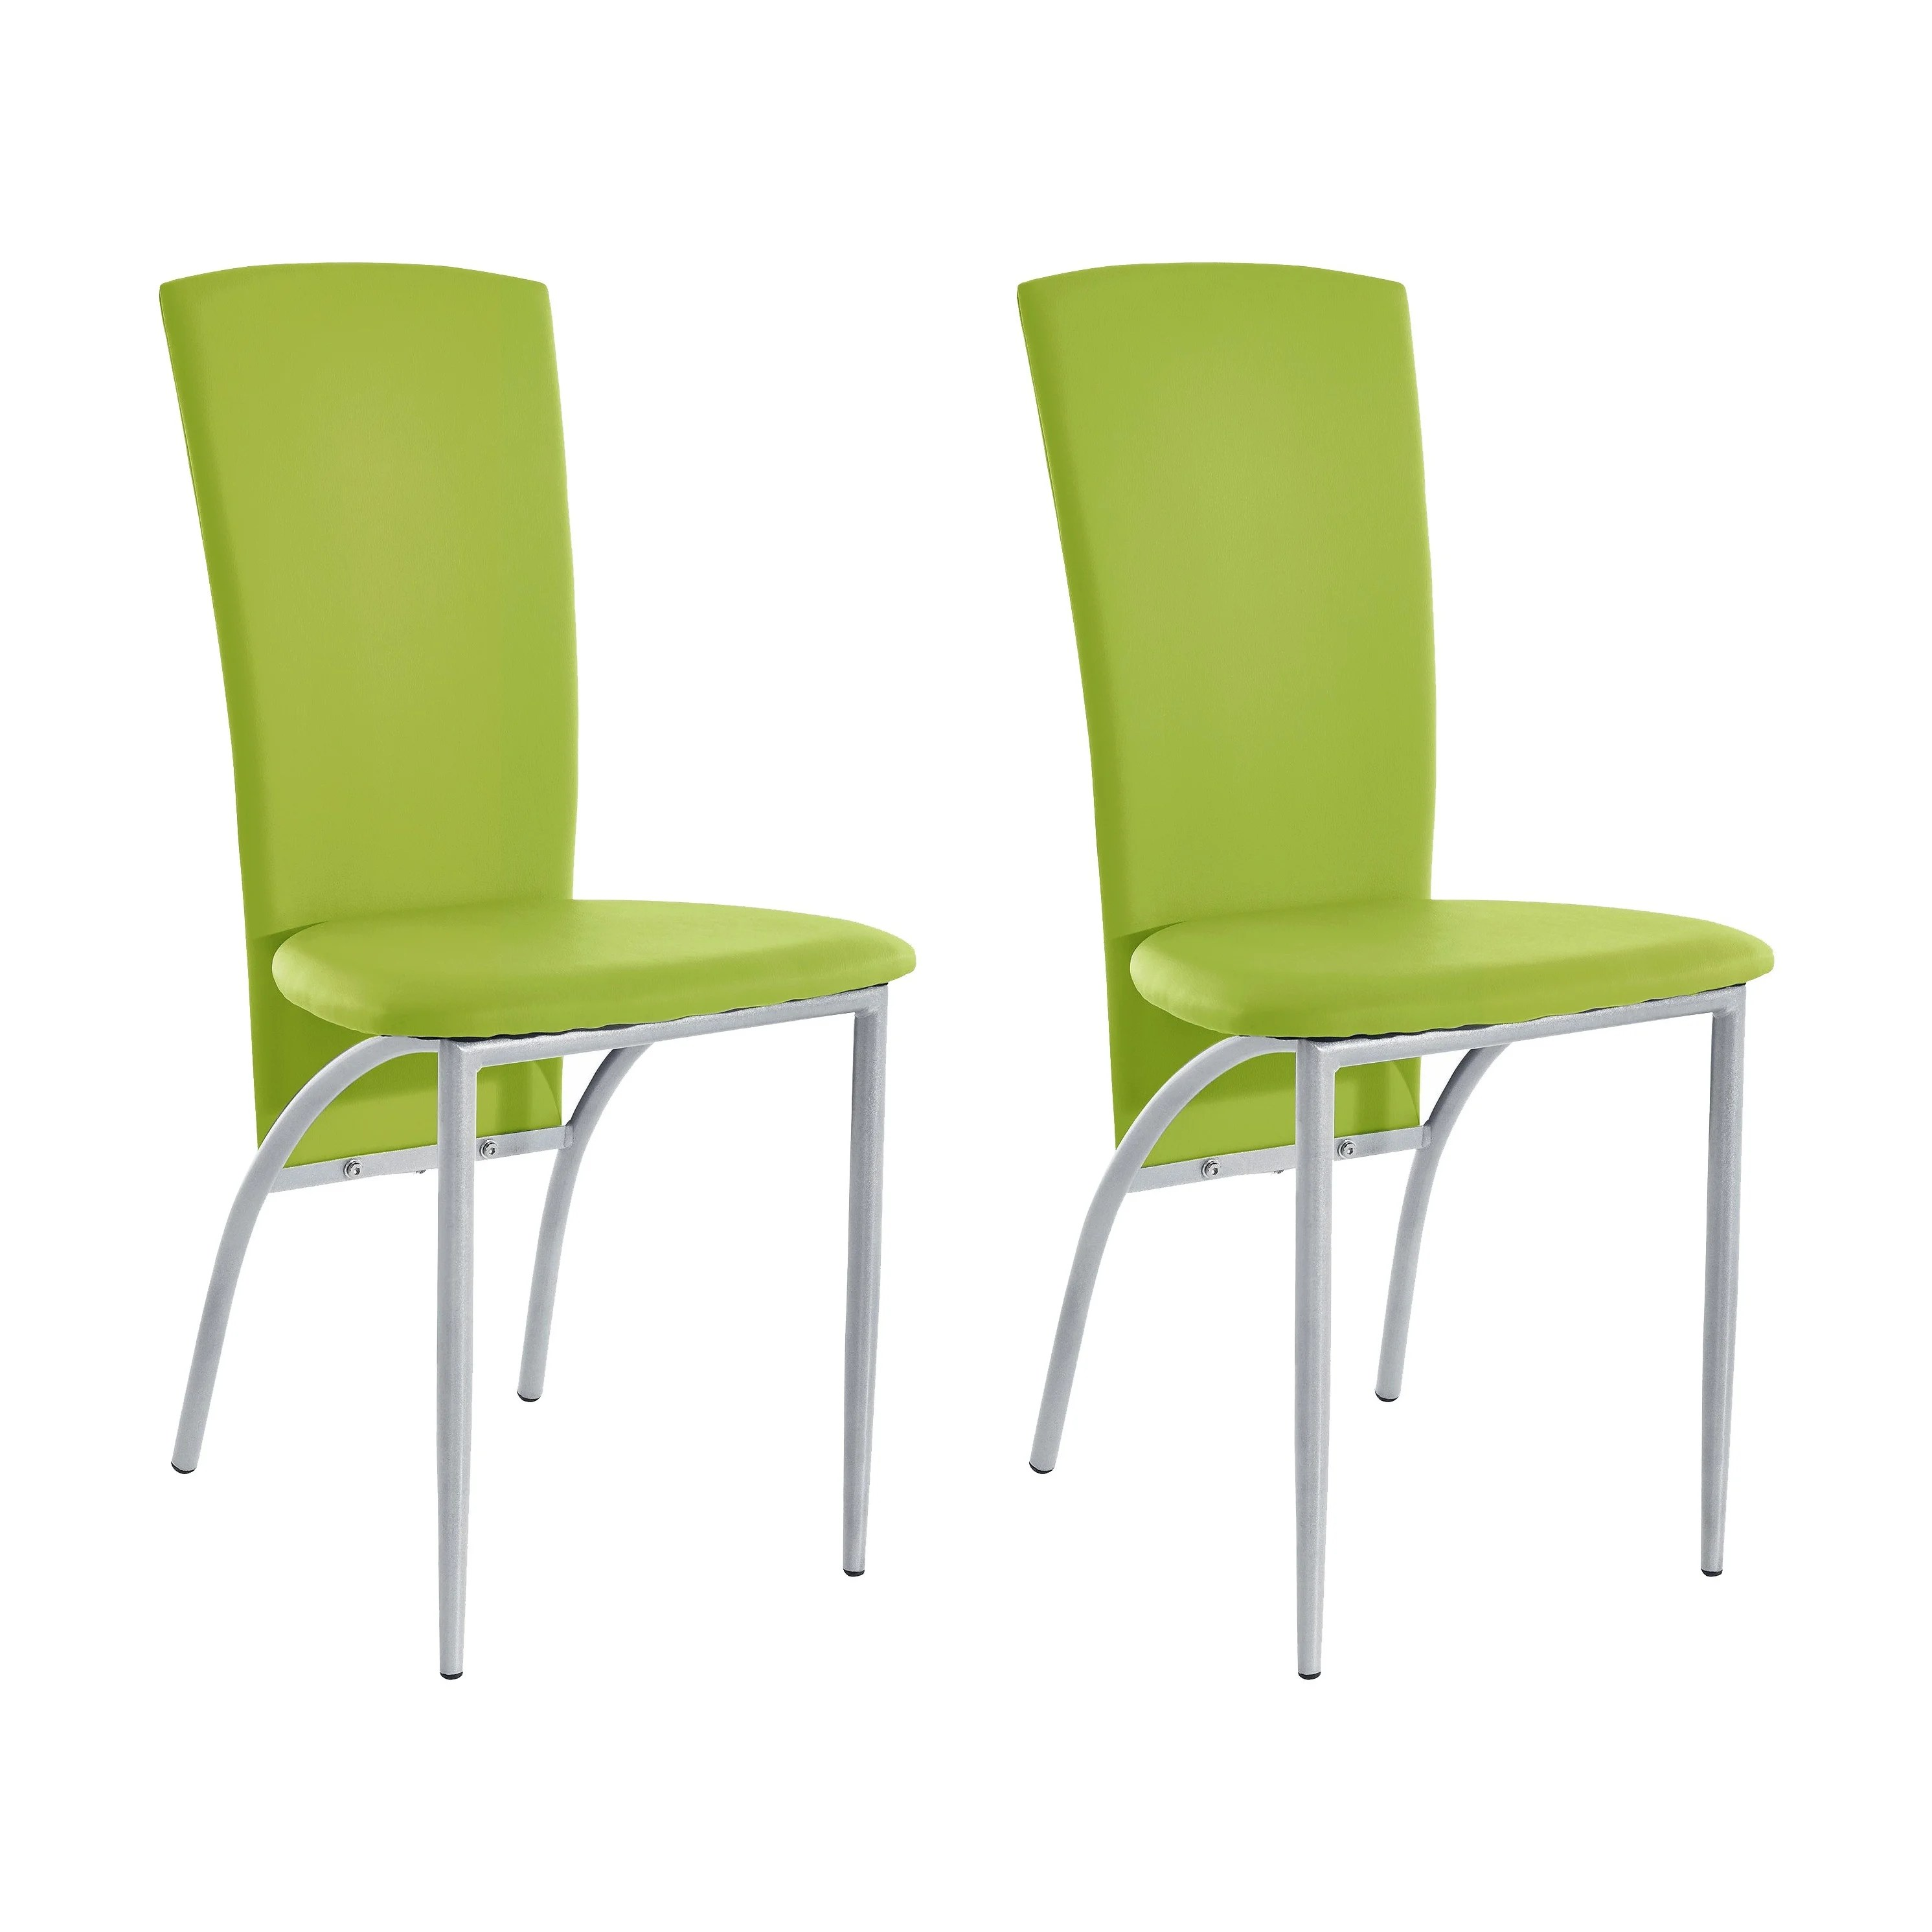 Scandinavian Chairs Scandinavian Living Nevada Dining Chairs Set Of 4 37 8 Inches High X 17 7 Inches Wide X 20 9 Inches